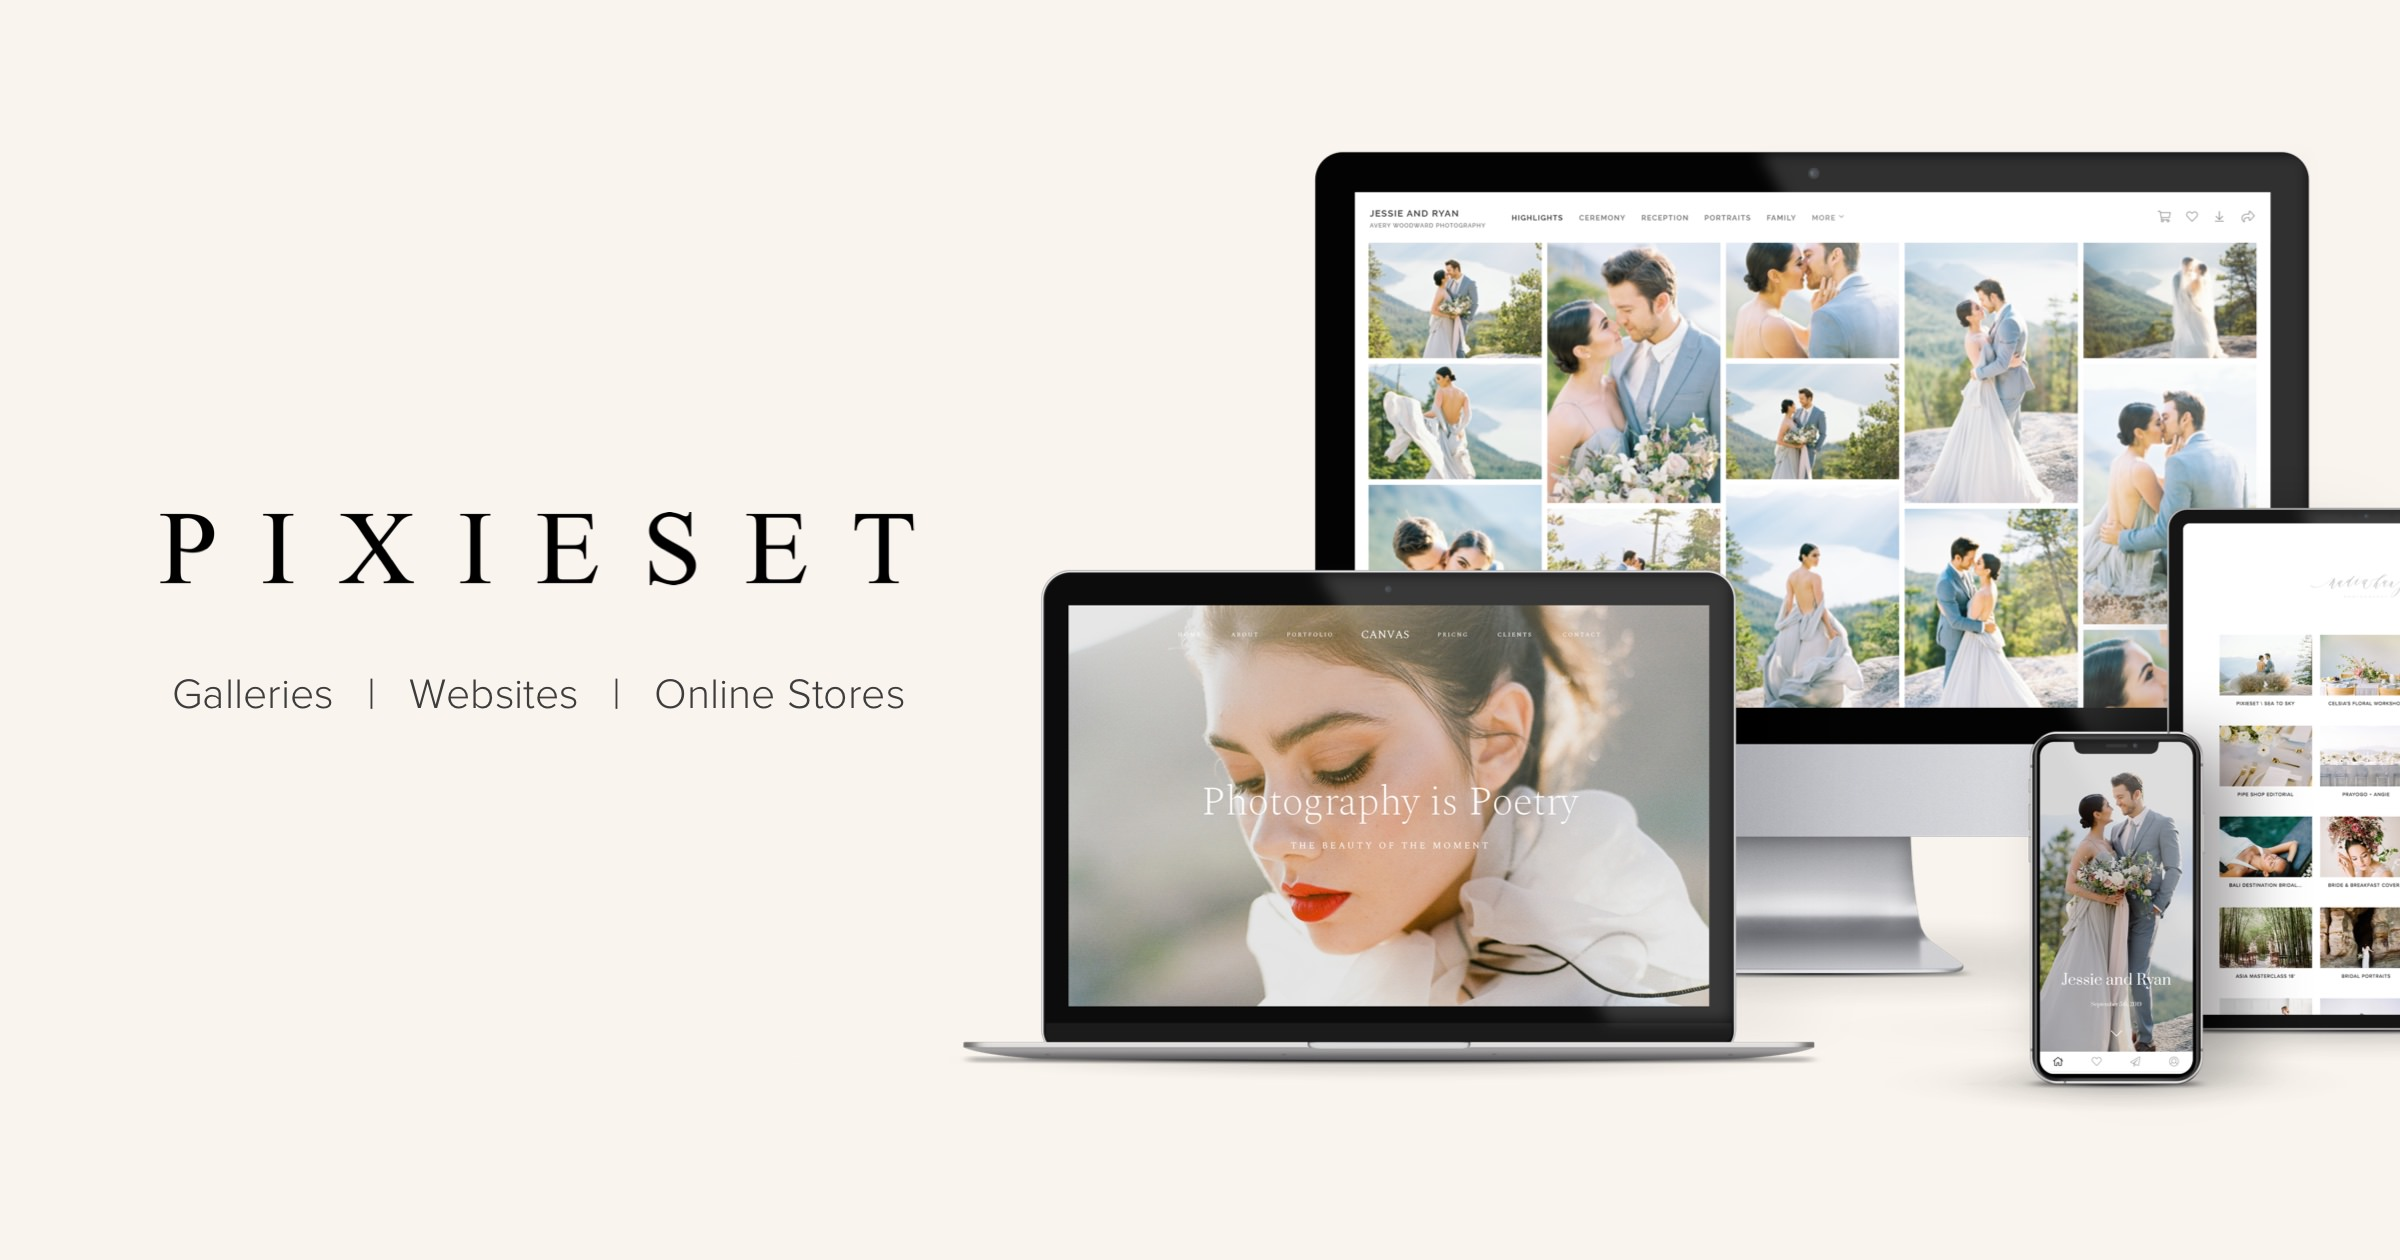 Pixieset Client Photo Gallery For Modern Photographers